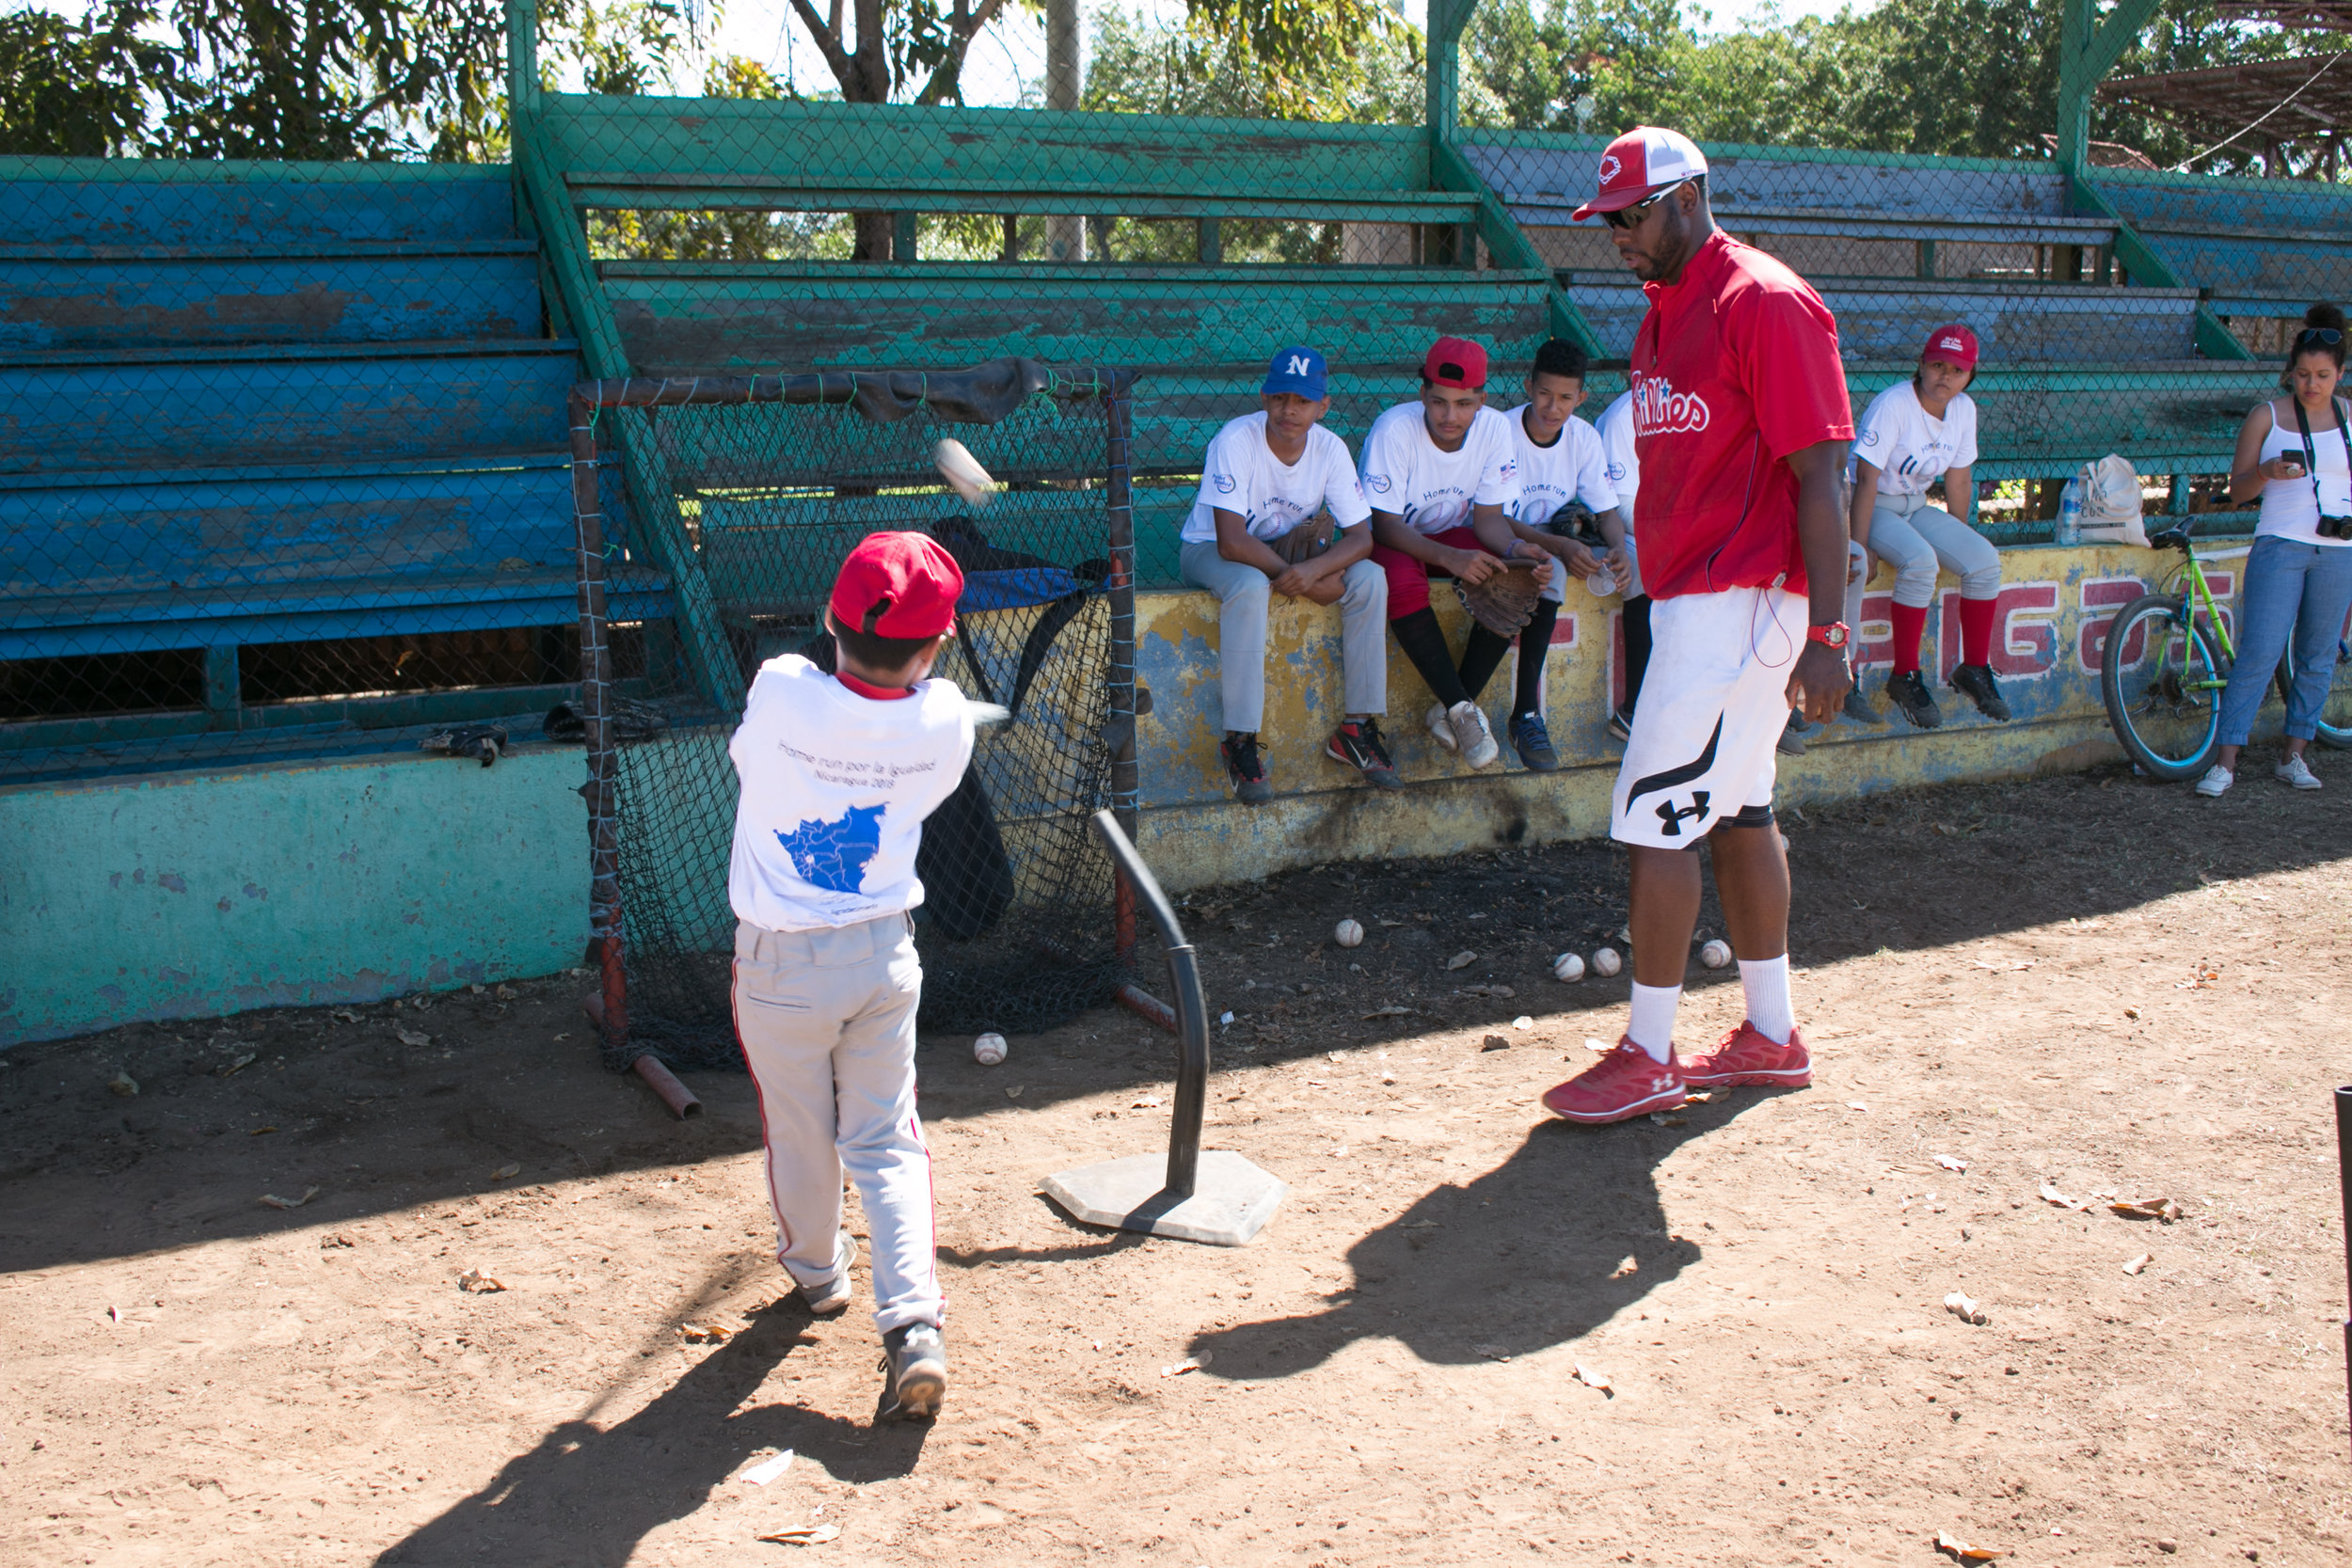 Mayberry Jr. providing hitting instruction at a camp in Ciudad Sandino, Nicaragua. Photo by Milessa Lowrie.